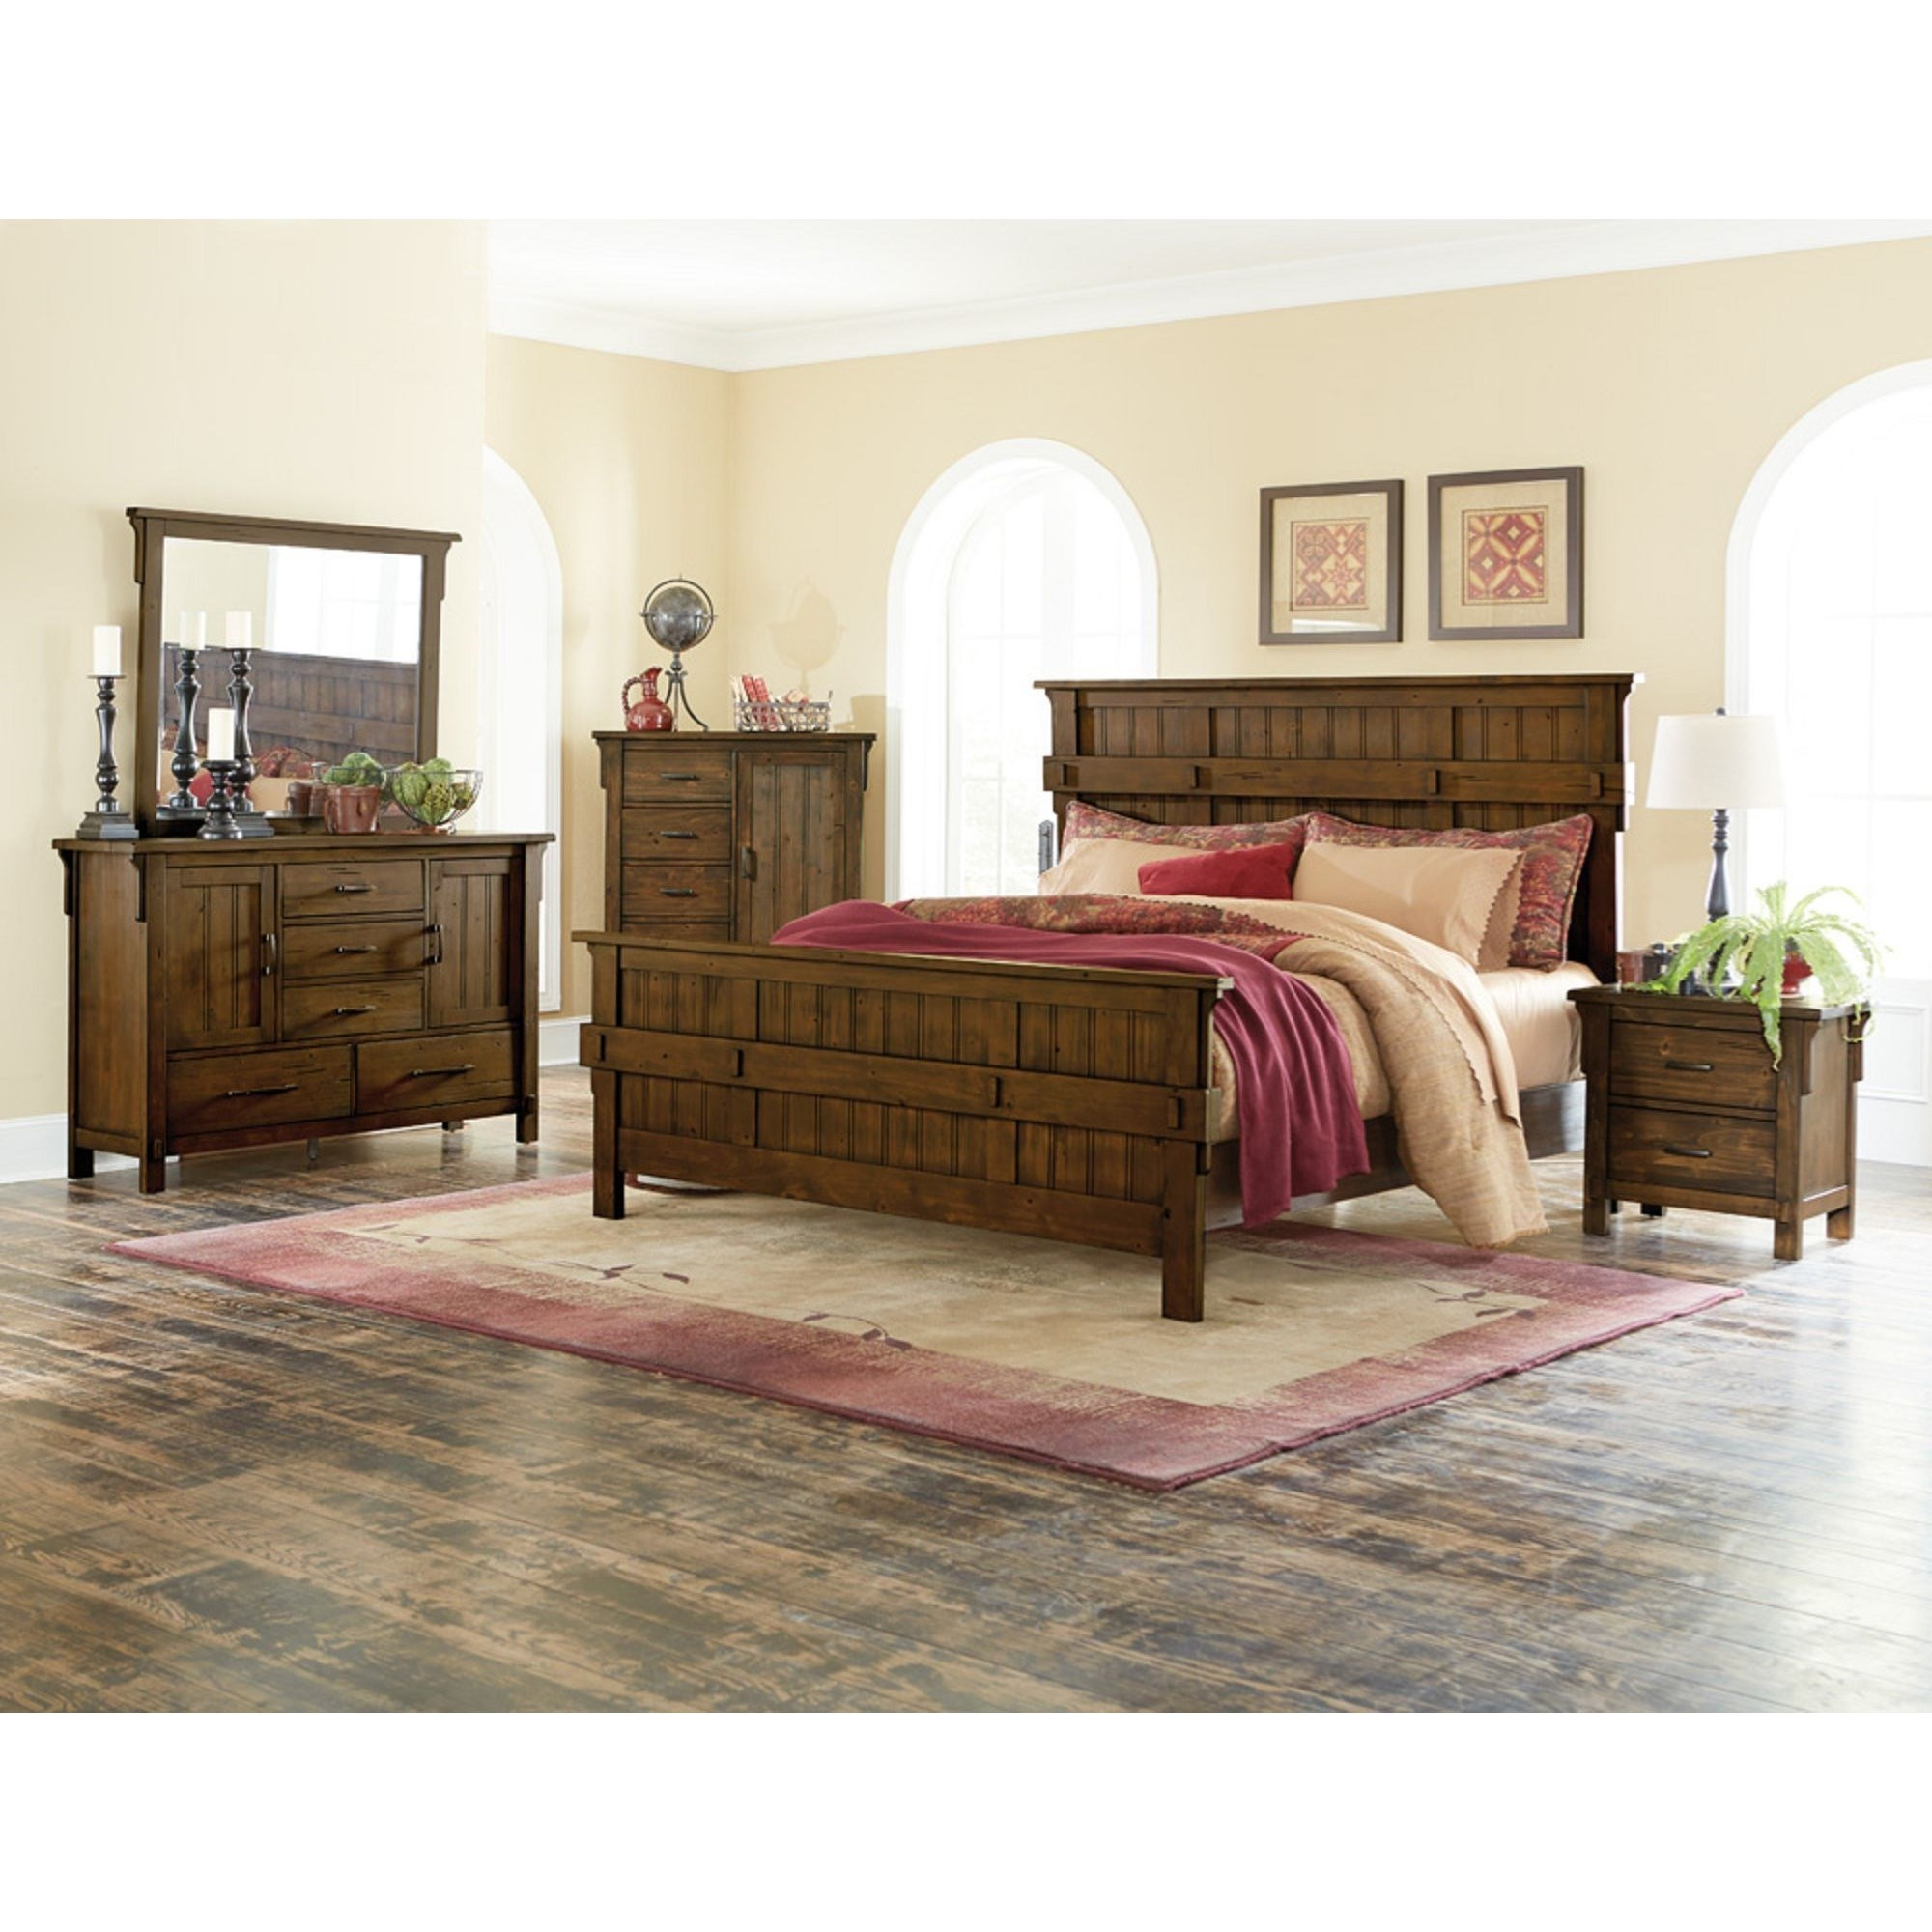 Terrace Queen Bedroom Group by Homelegance at Simply Home by Lindy's